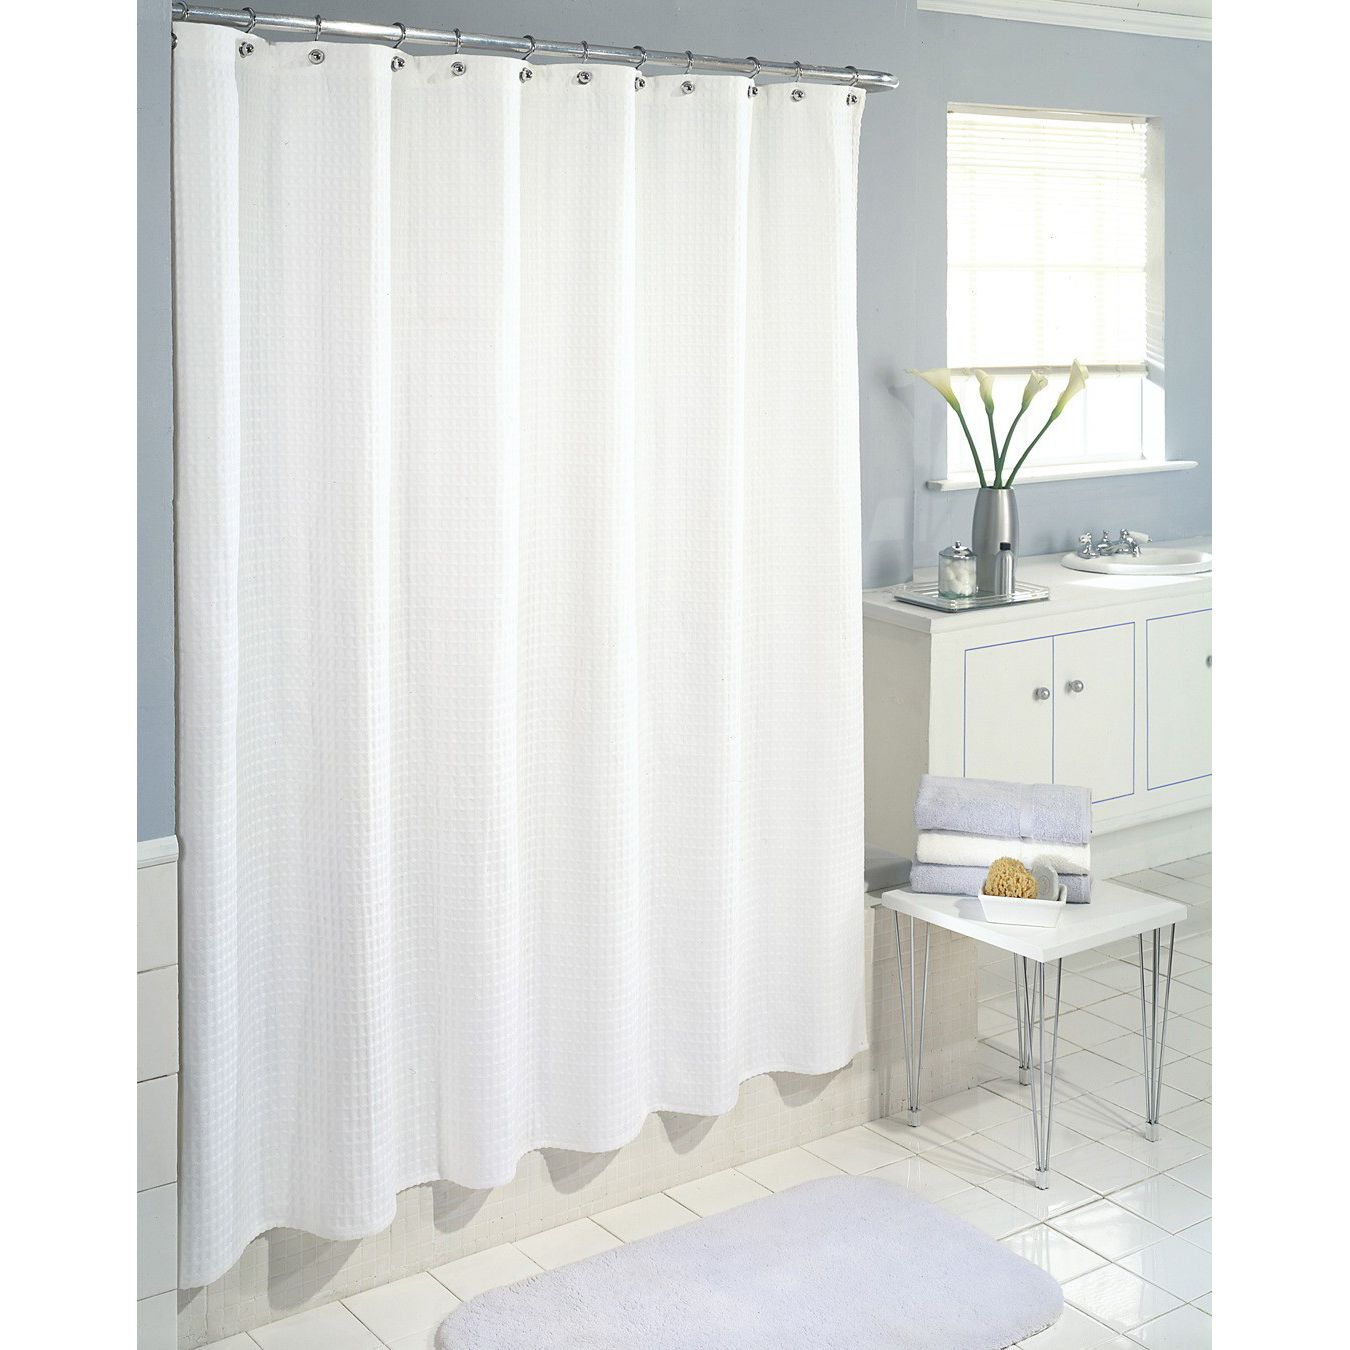 Colormate Waffle Wave Fabric Shower Curtain White